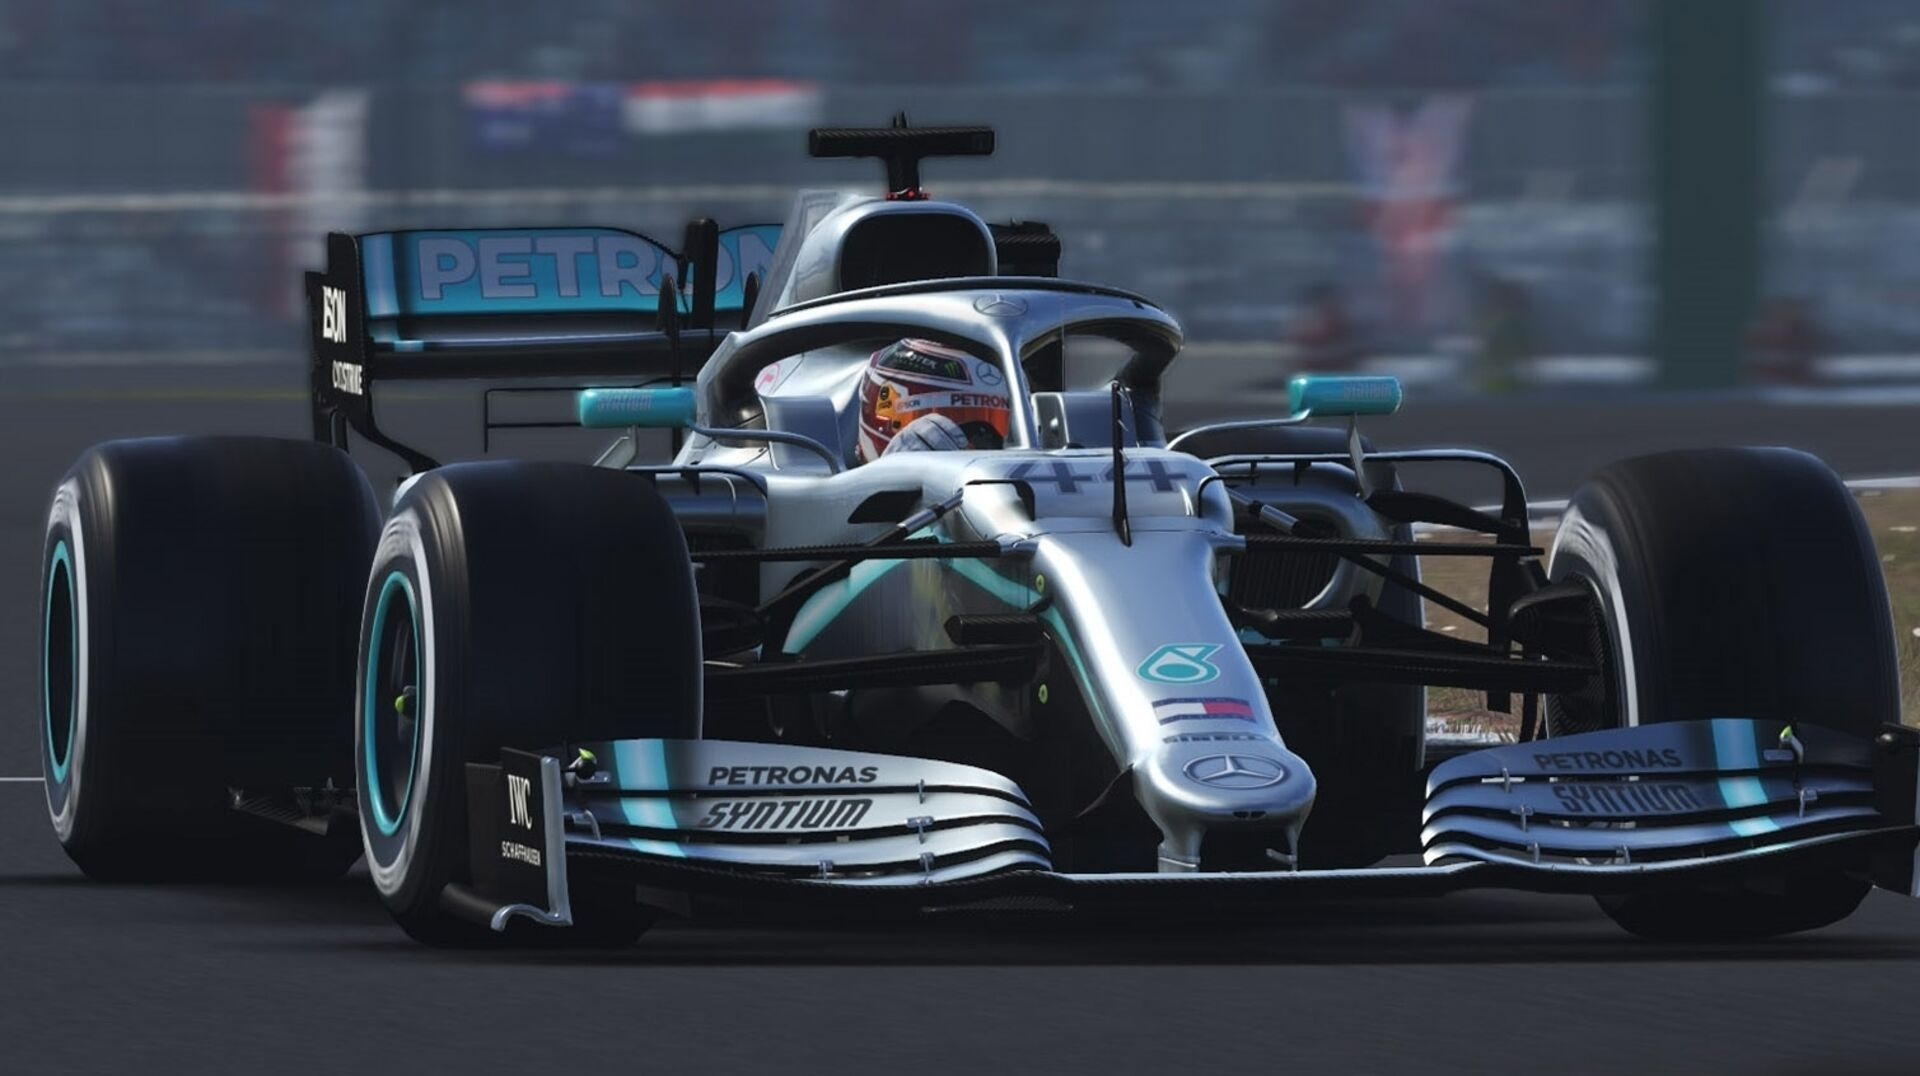 F1 2019 review - the most authentic F1 game to date